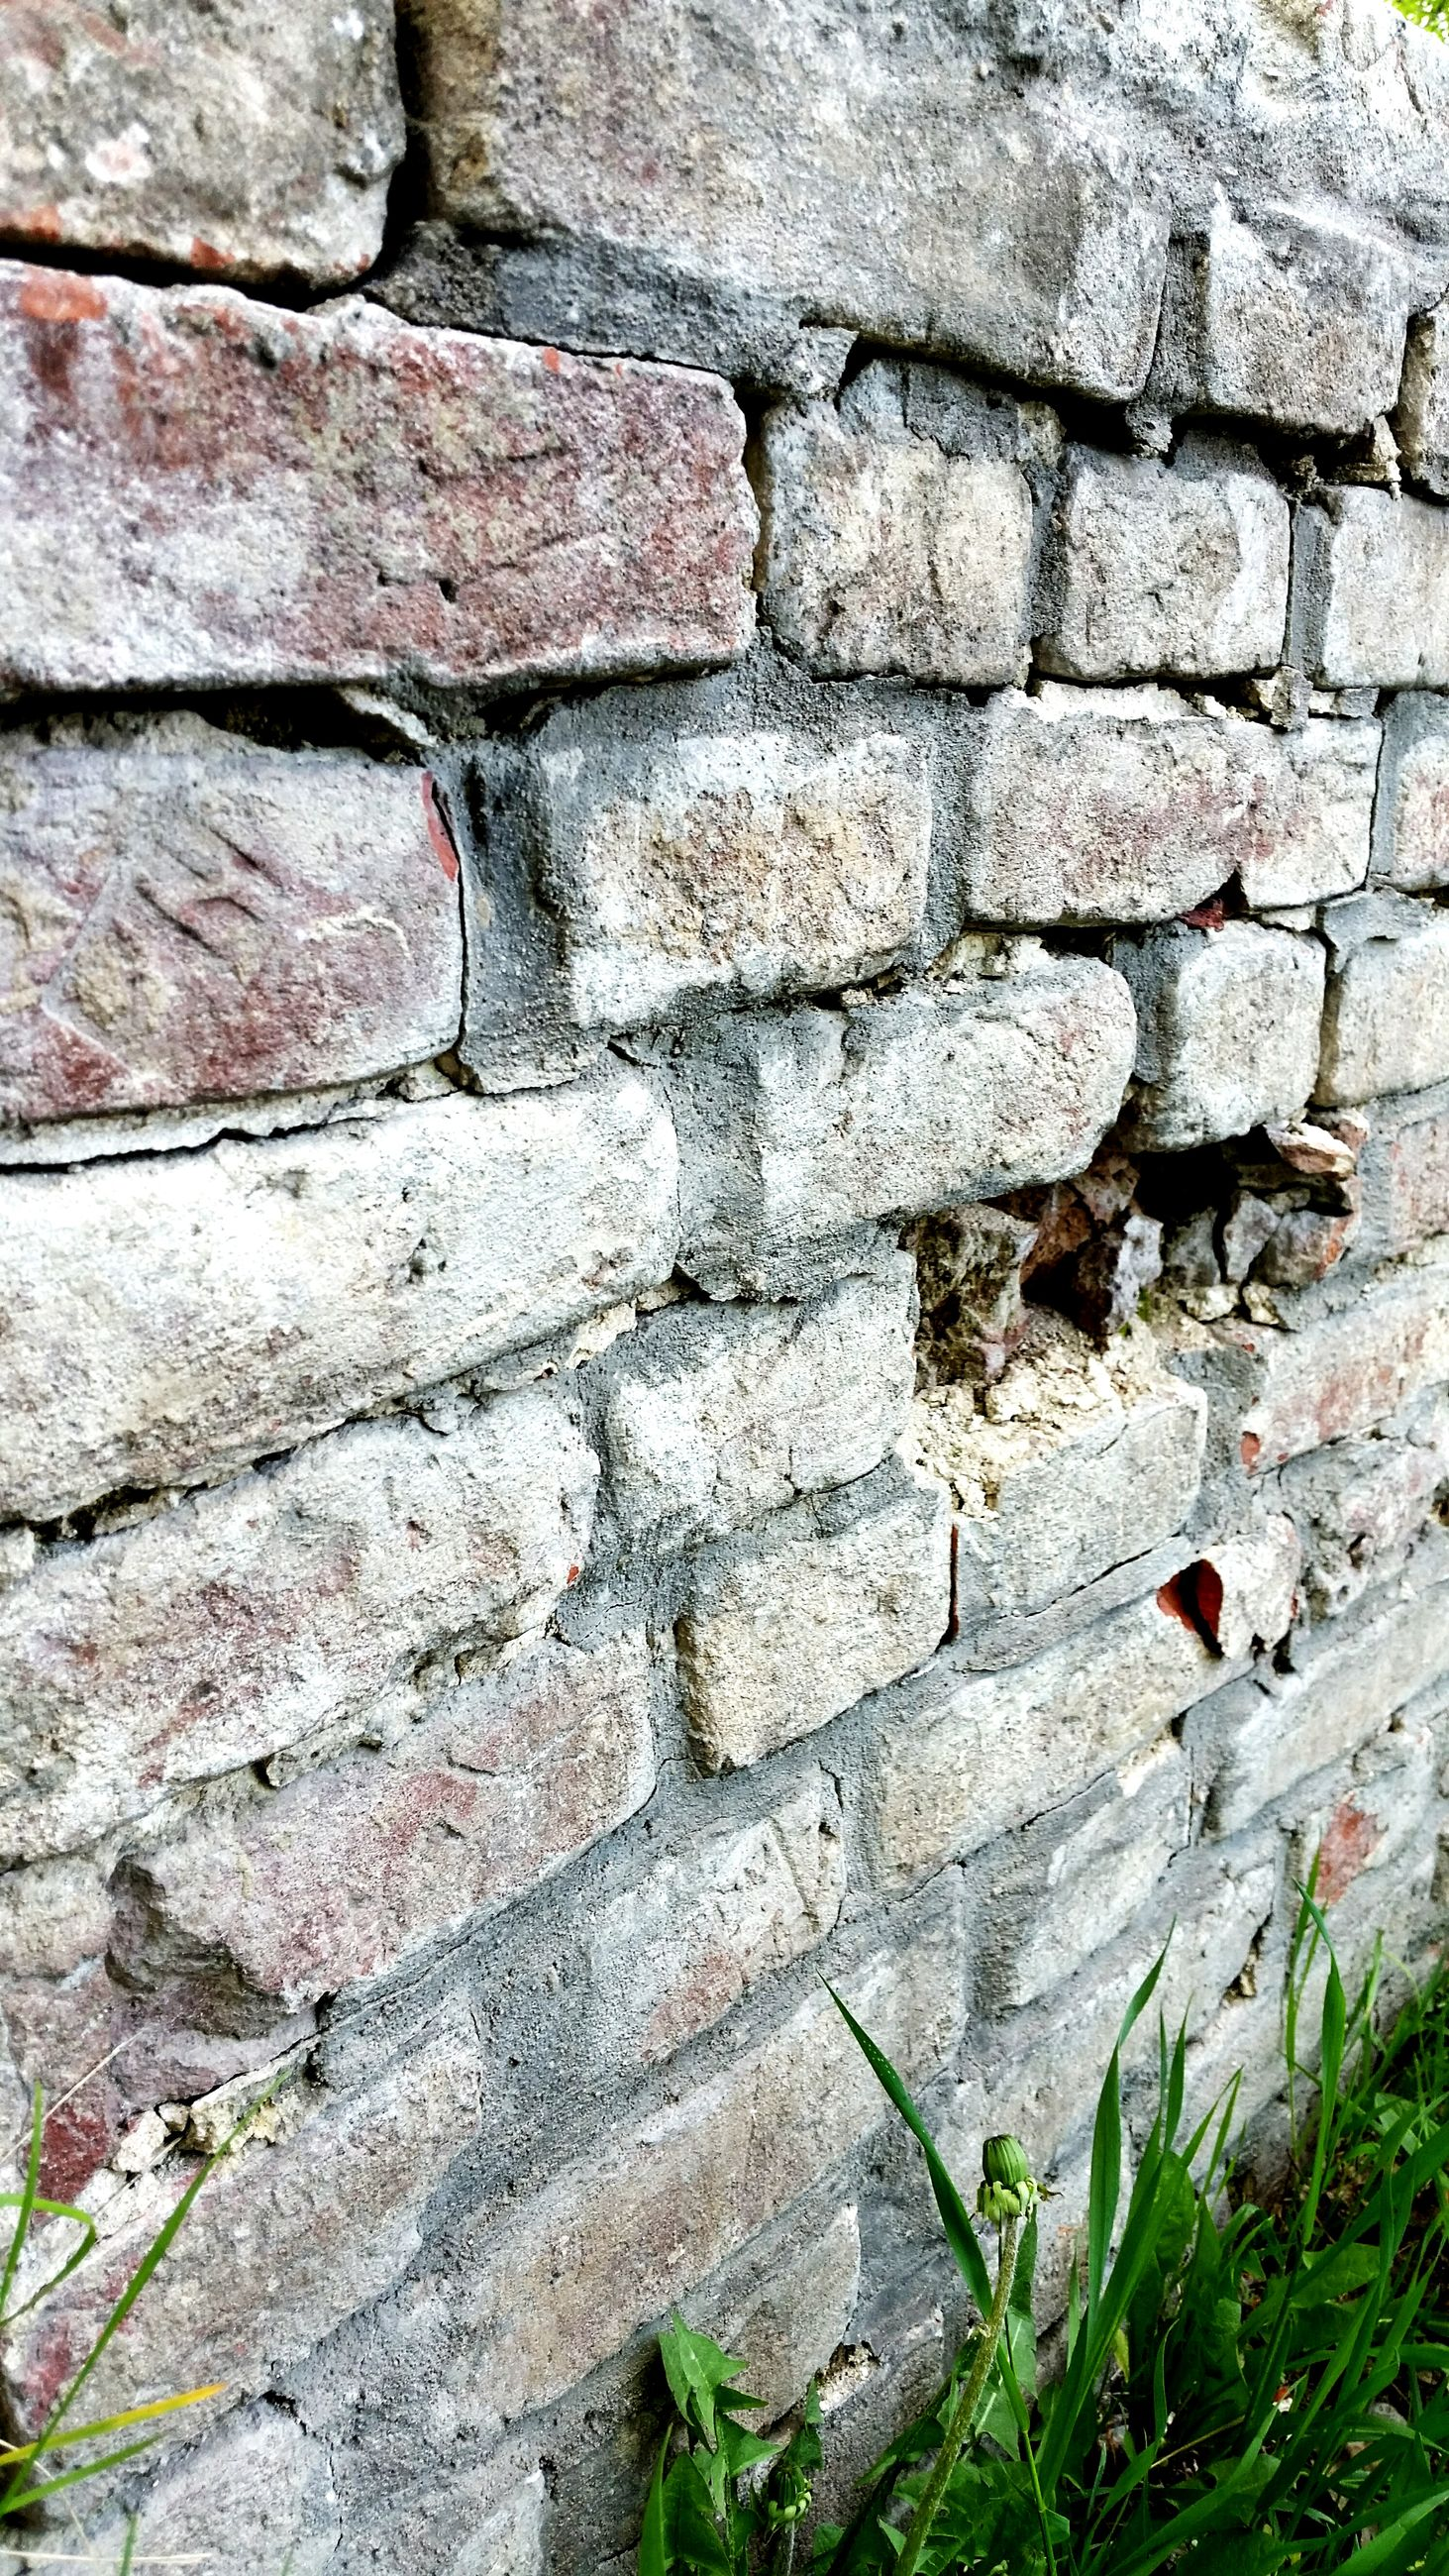 full frame, backgrounds, brick wall, textured, stone wall, wall - building feature, pattern, built structure, architecture, brick, close-up, rough, day, outdoors, weathered, no people, old, wall, building exterior, growth